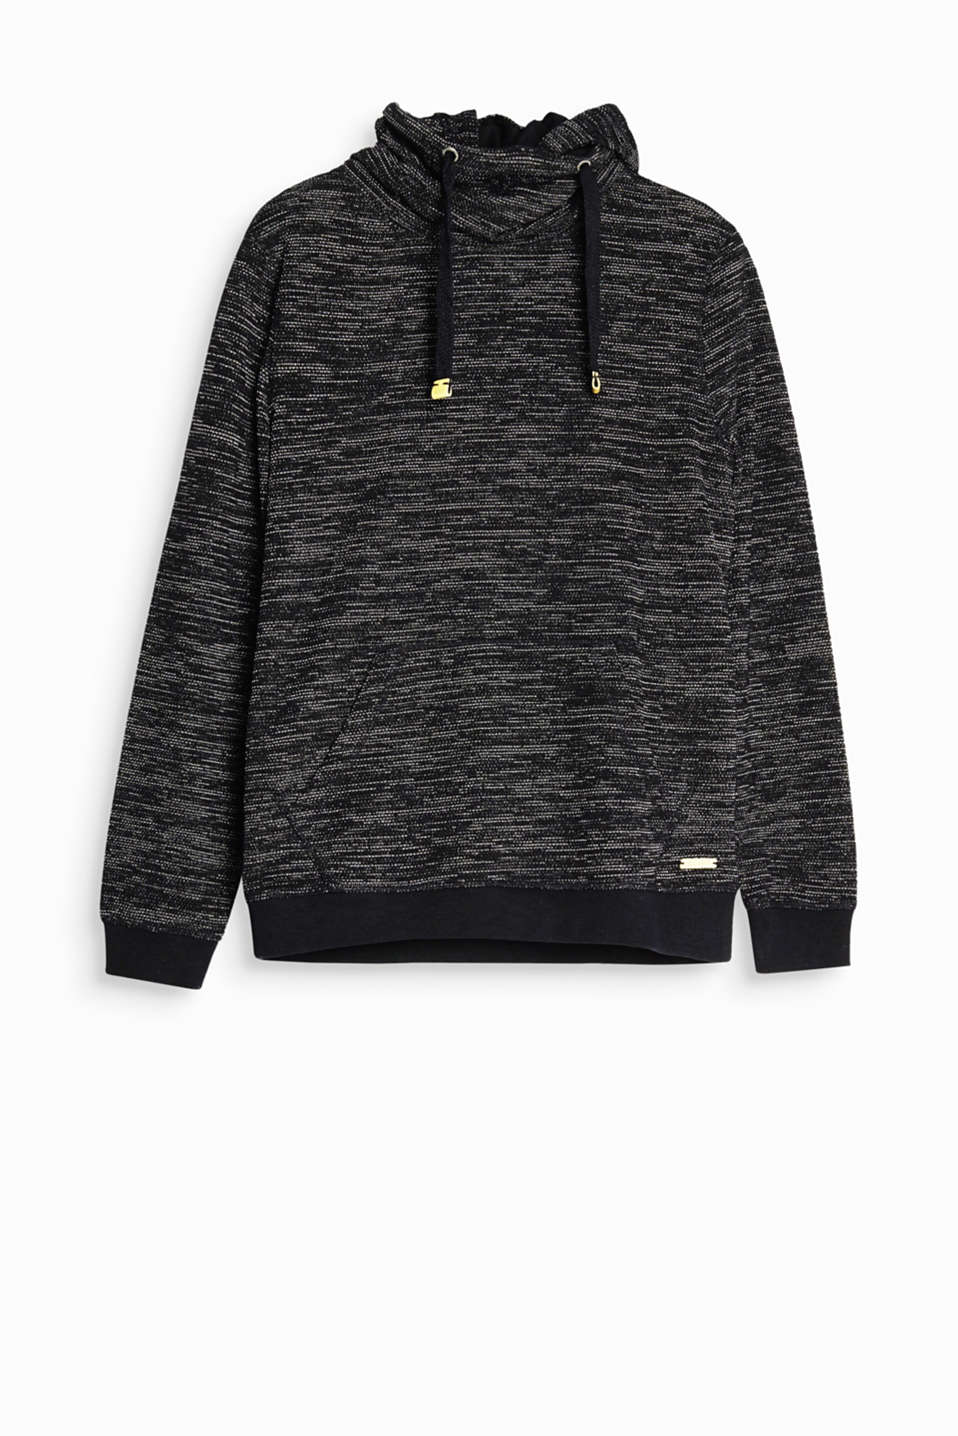 Hood plus a high funnel collar! This sweatshirt will highlight your sporty style with its two-tone waffle texture.